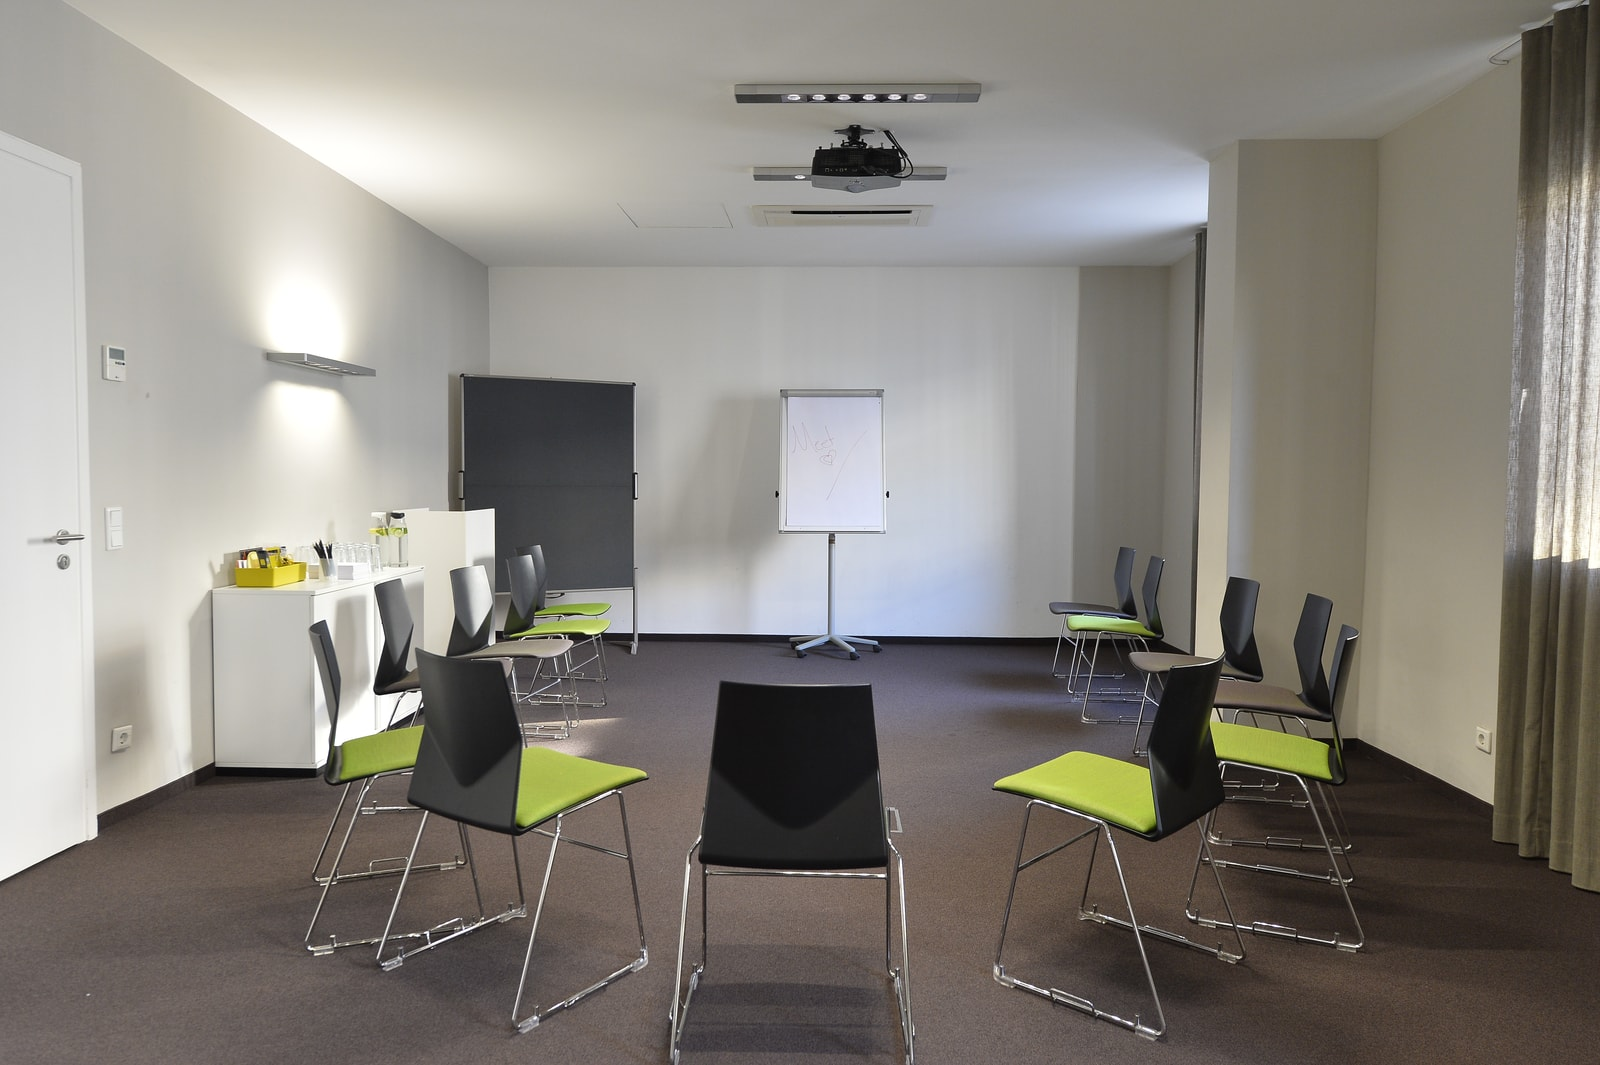 Office spaces for small groups and project groups